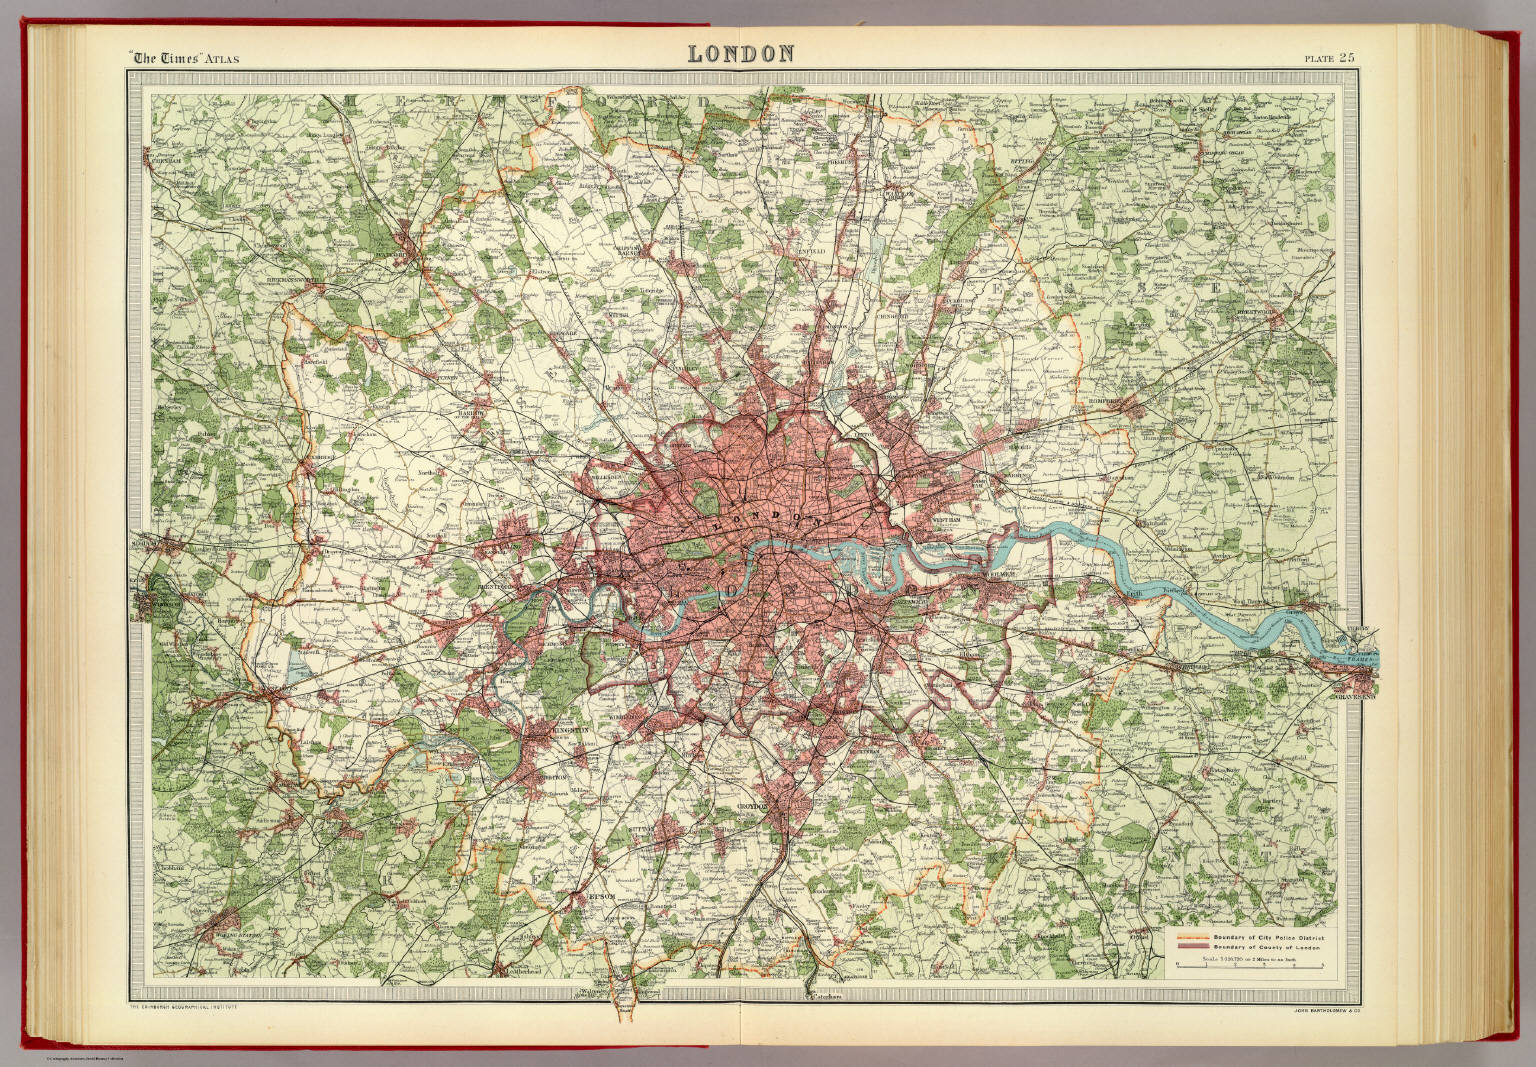 London David Rumsey Historical Map Collection - London map historical